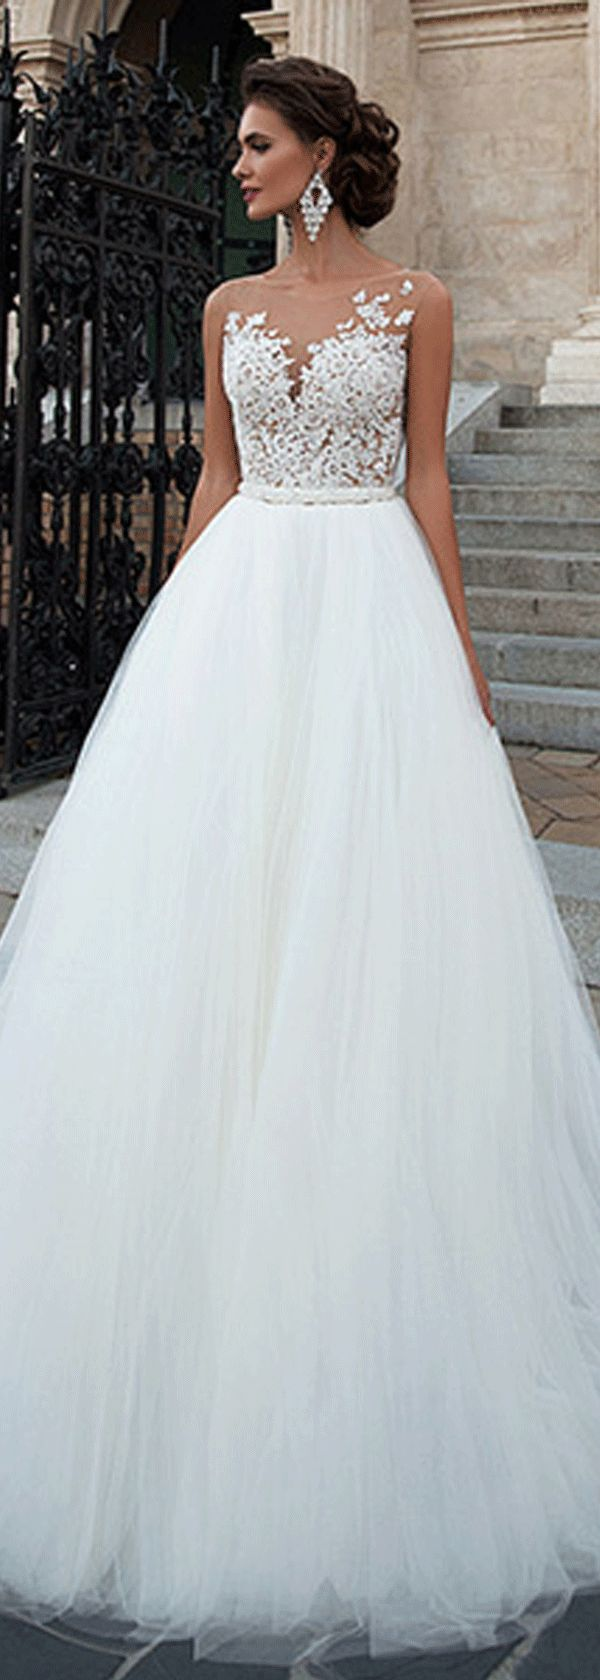 Charming Tulle Bateau Neckline A-line Wedding Dresses with Lace Appliques http://www.dressilyme.com/p-charming-tulle-bateau-neckline-a-line-wedding-dresses-with-lace-appliques-68485.html